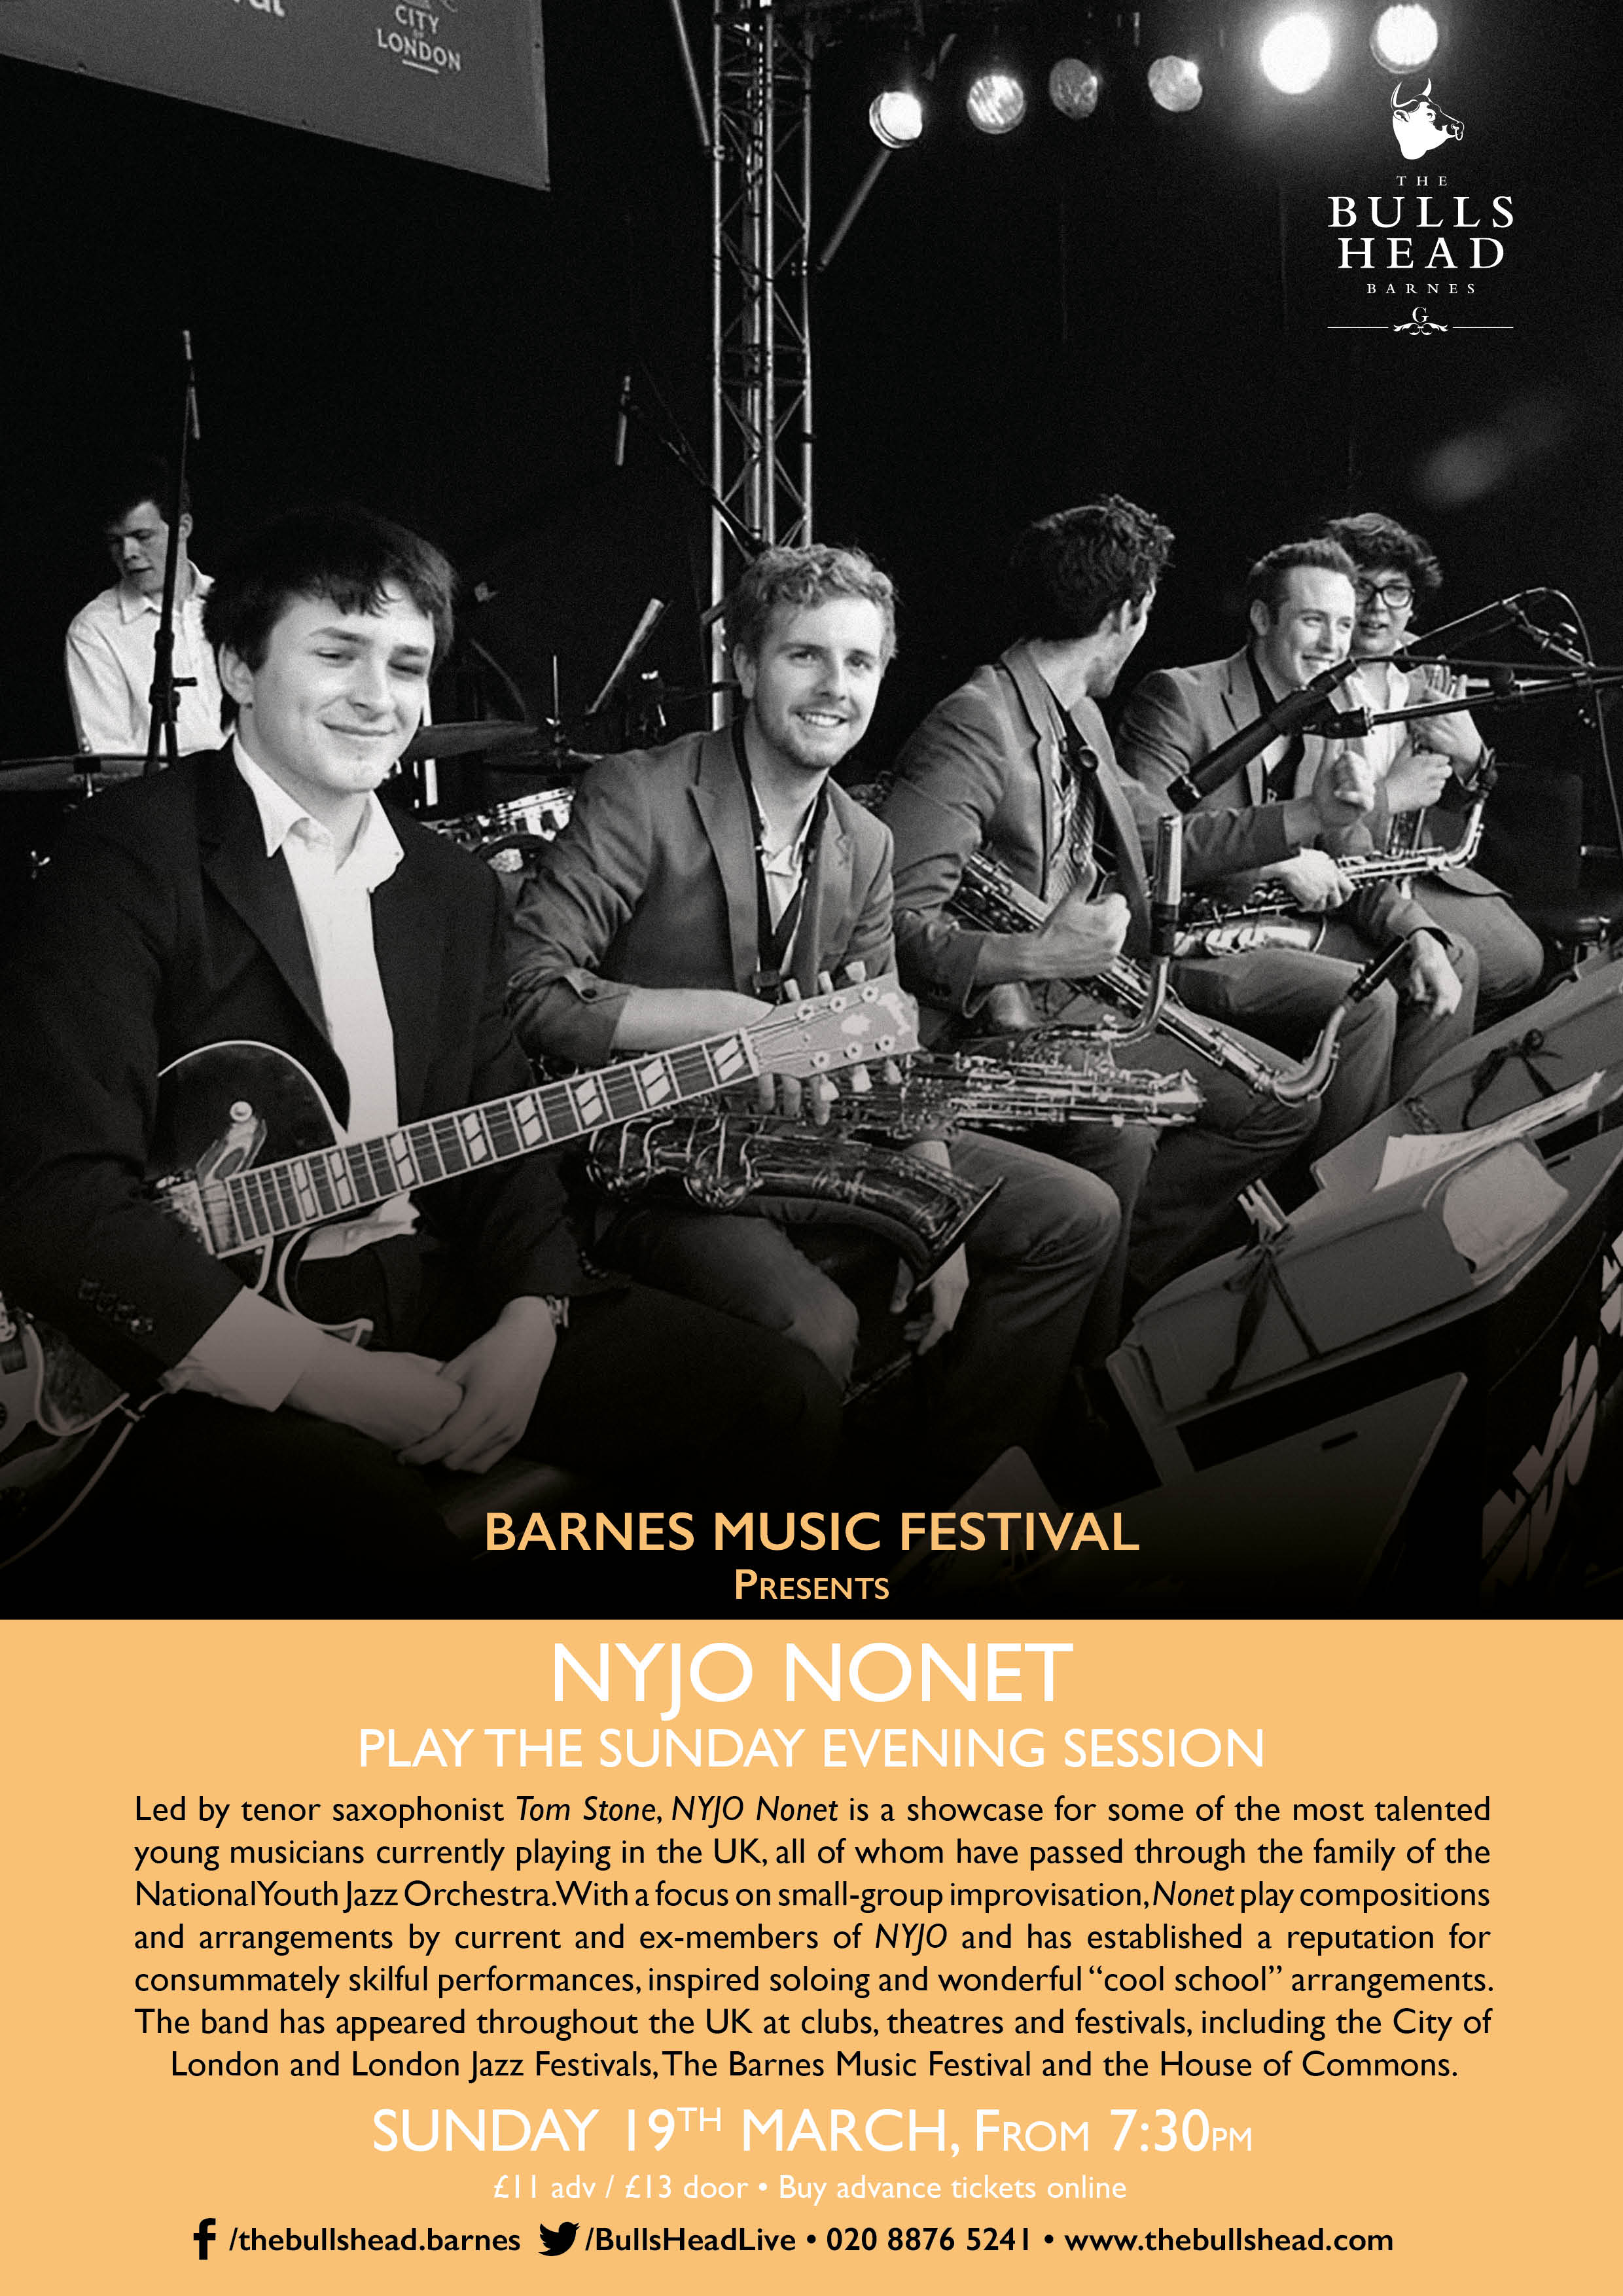 National Youth Jazz Orchestra Nonet led by Tom Stone